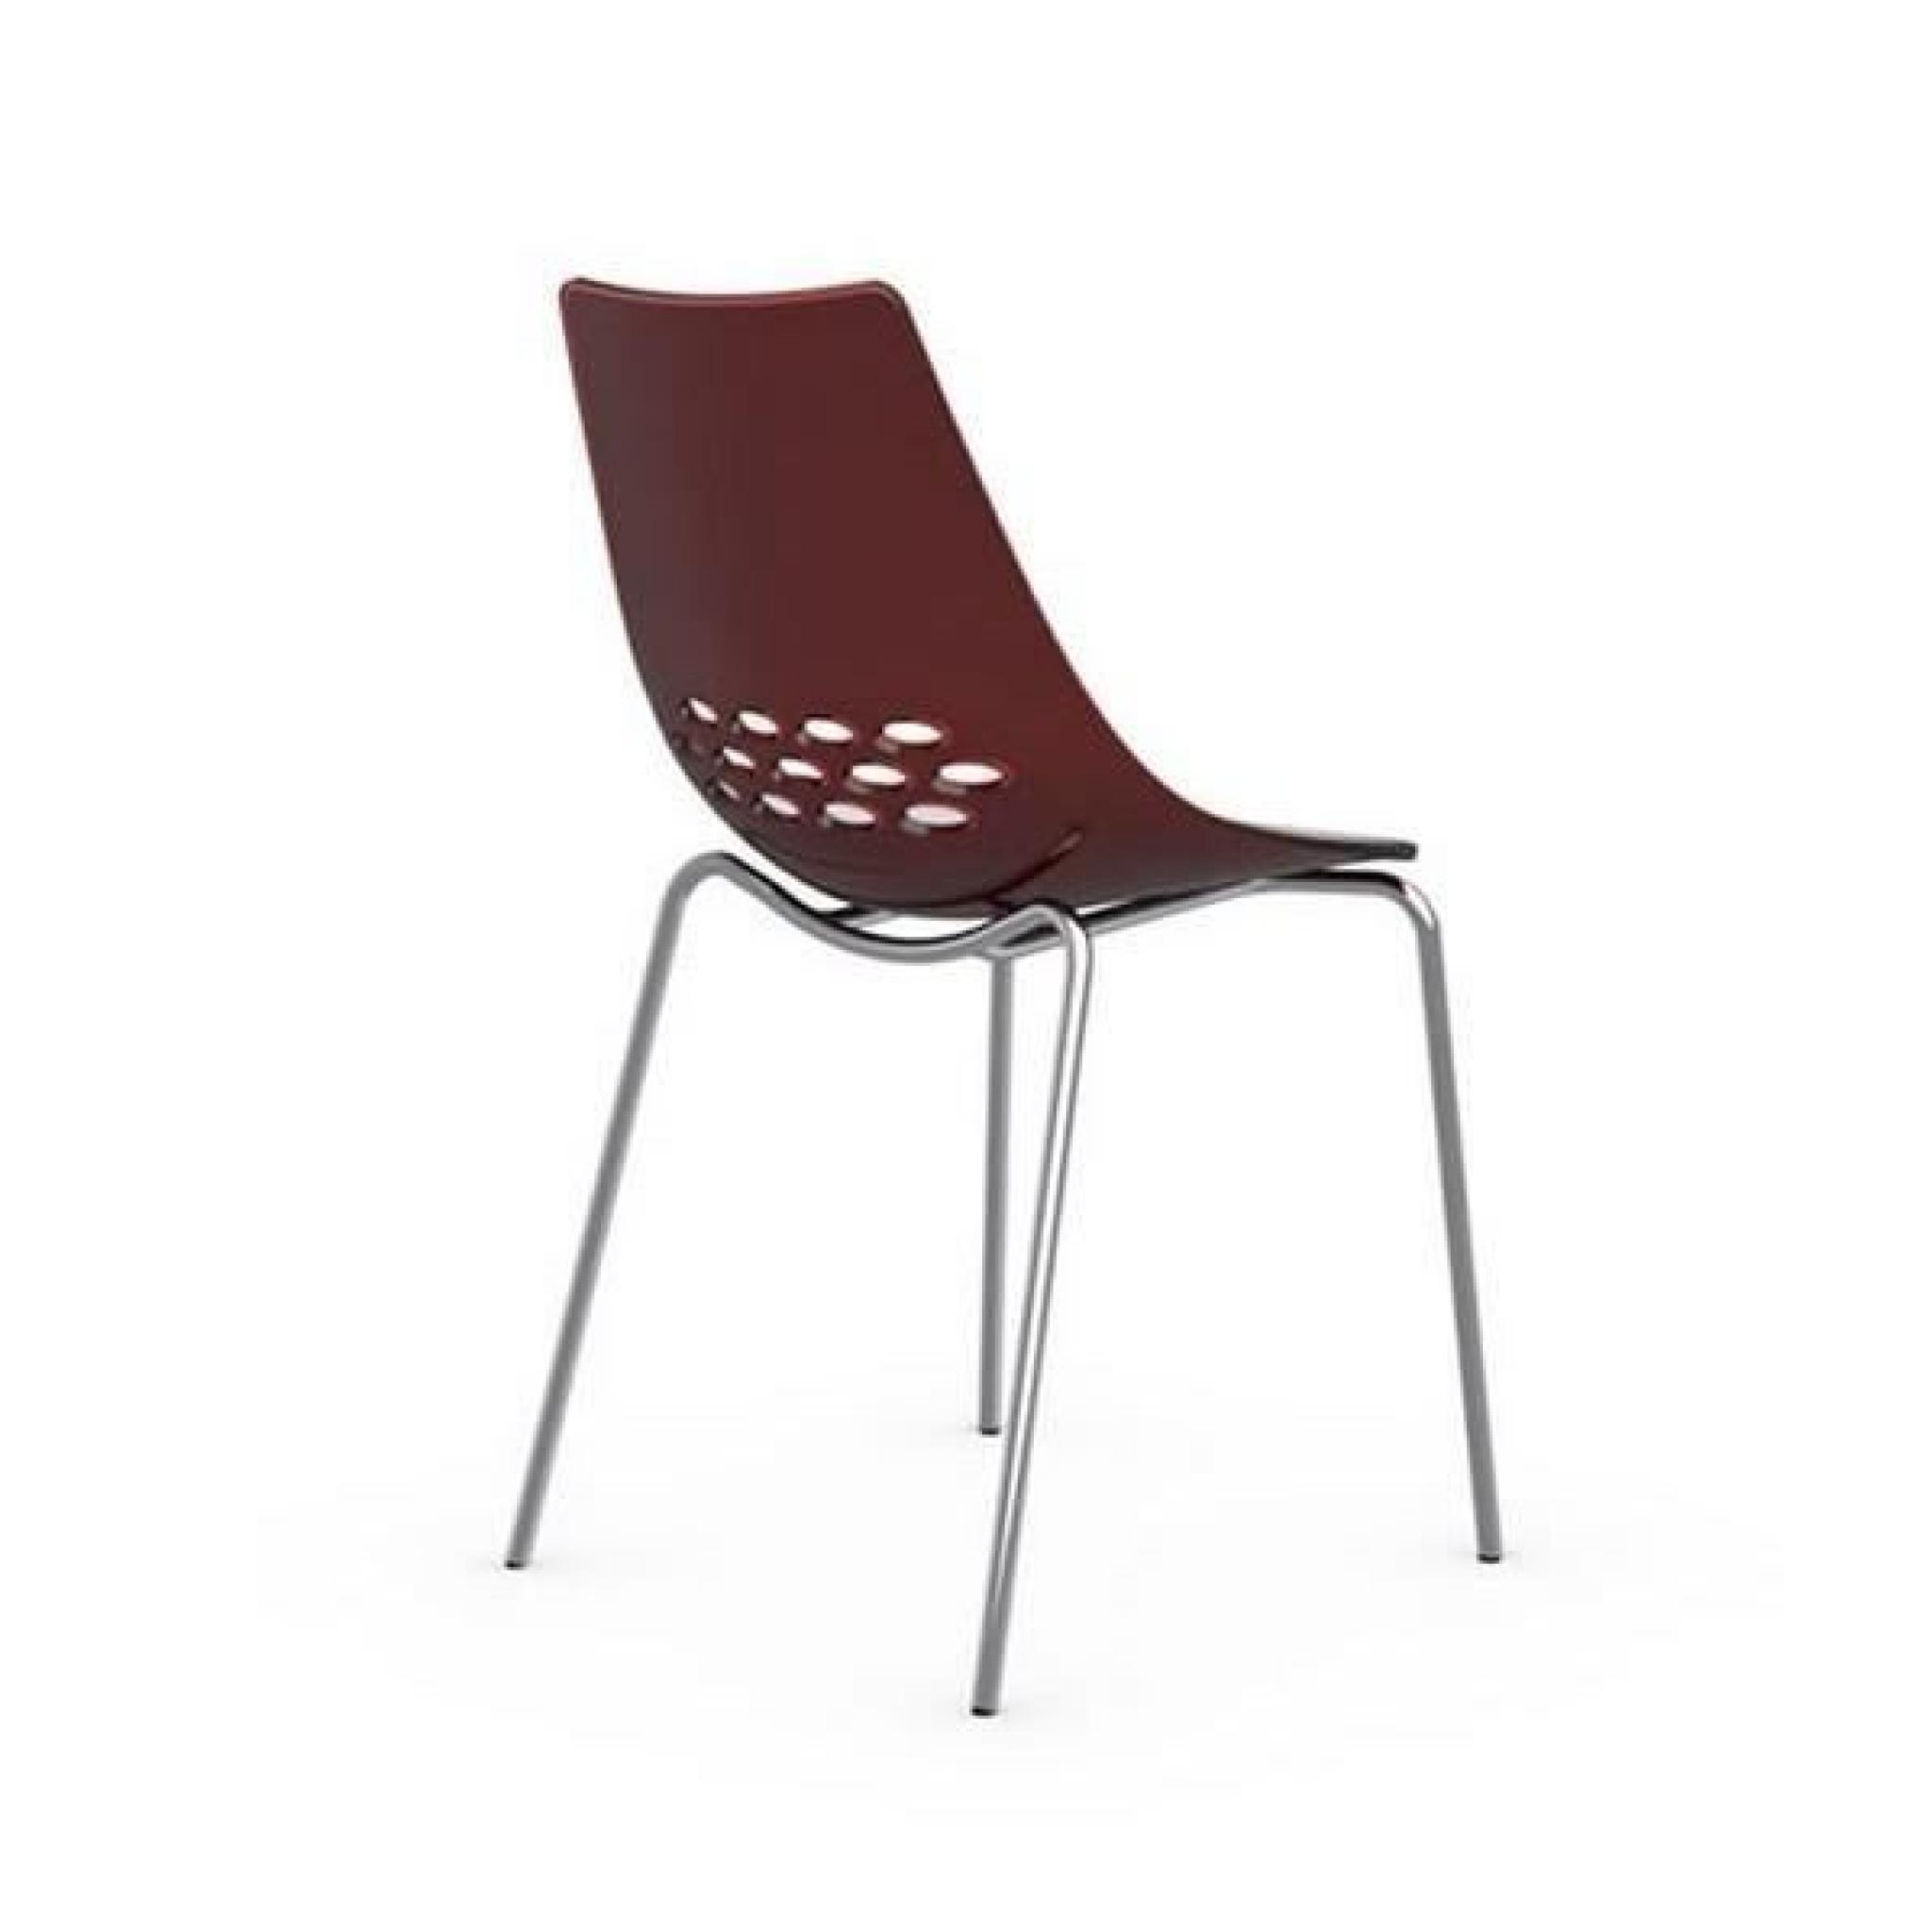 Chaise design jam blanche brillante et rouge transparent de calligaris acha - Chaise design blanche pas cher ...